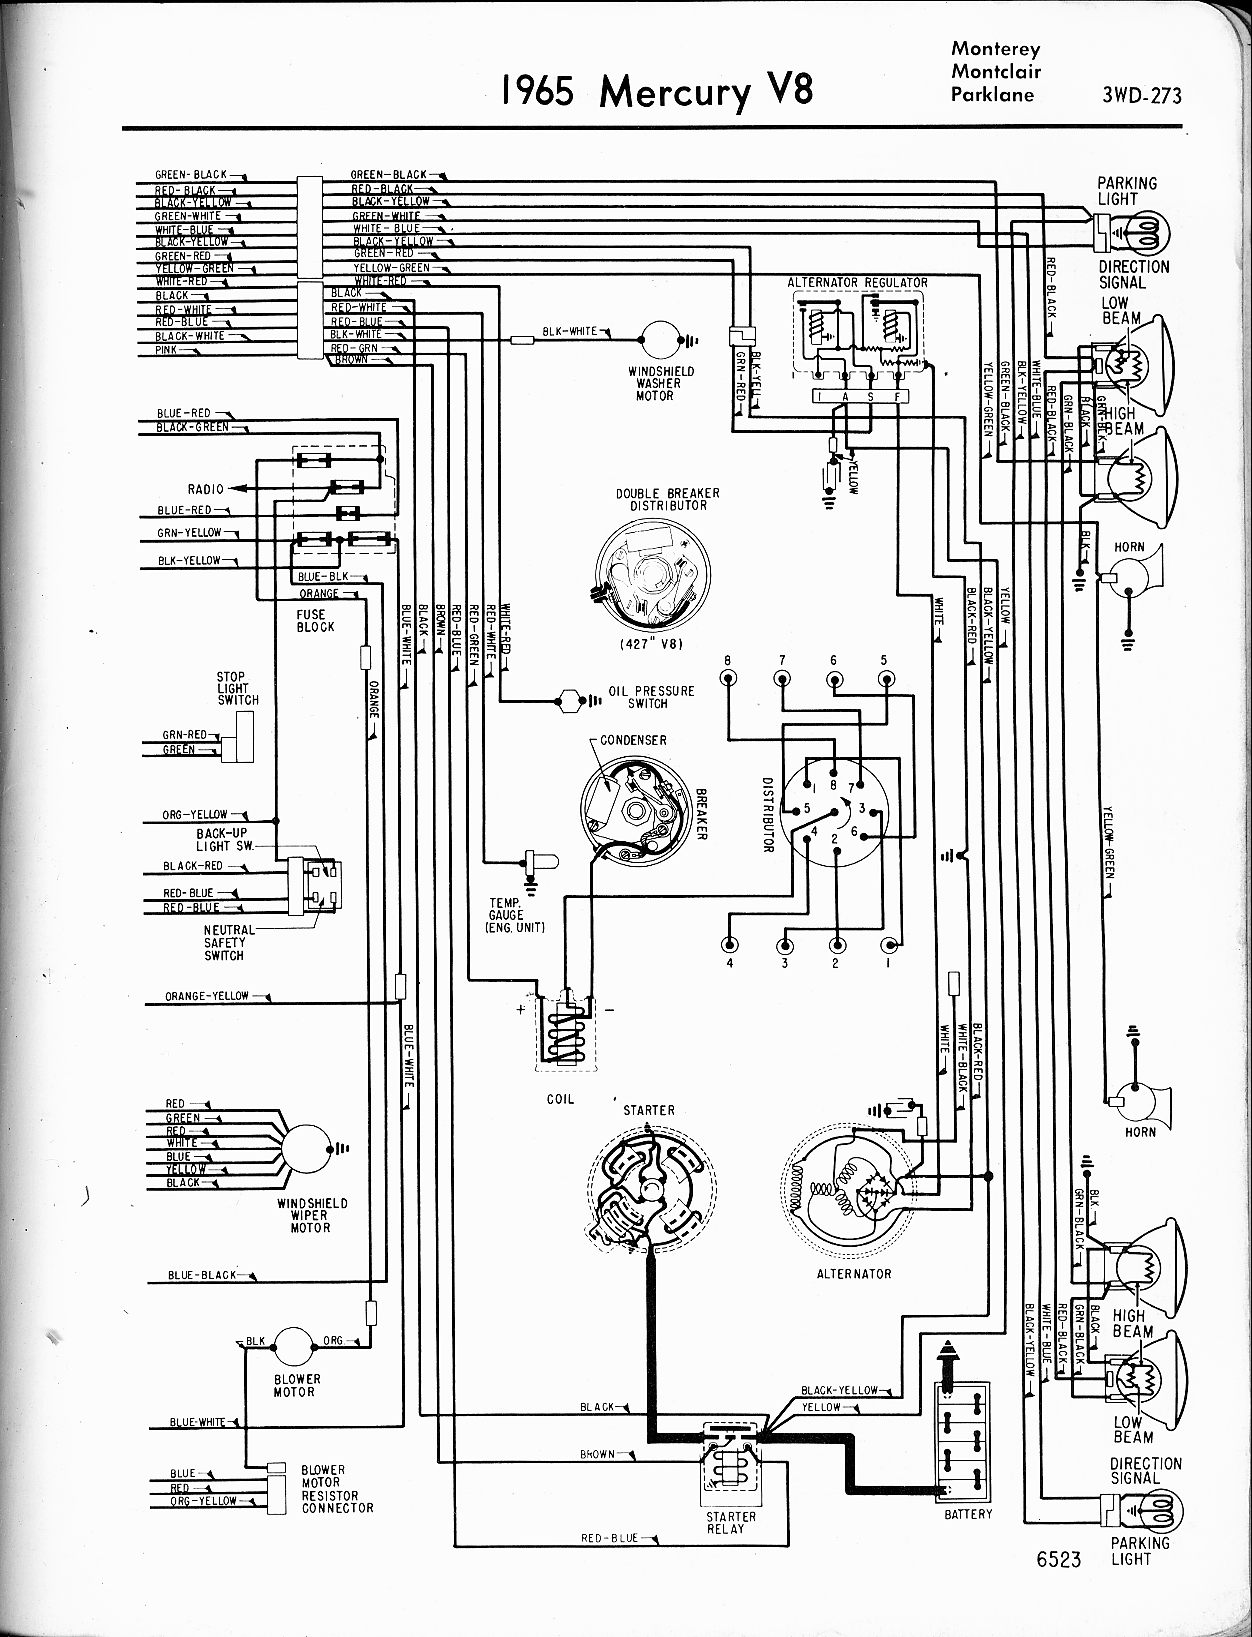 67 1967 chevy nova electrical wiring diagram manual mikes wiring 1970 chevelle ss wiring-diagram 65 chevelle dash wiring diagram temp data wiring diagrams